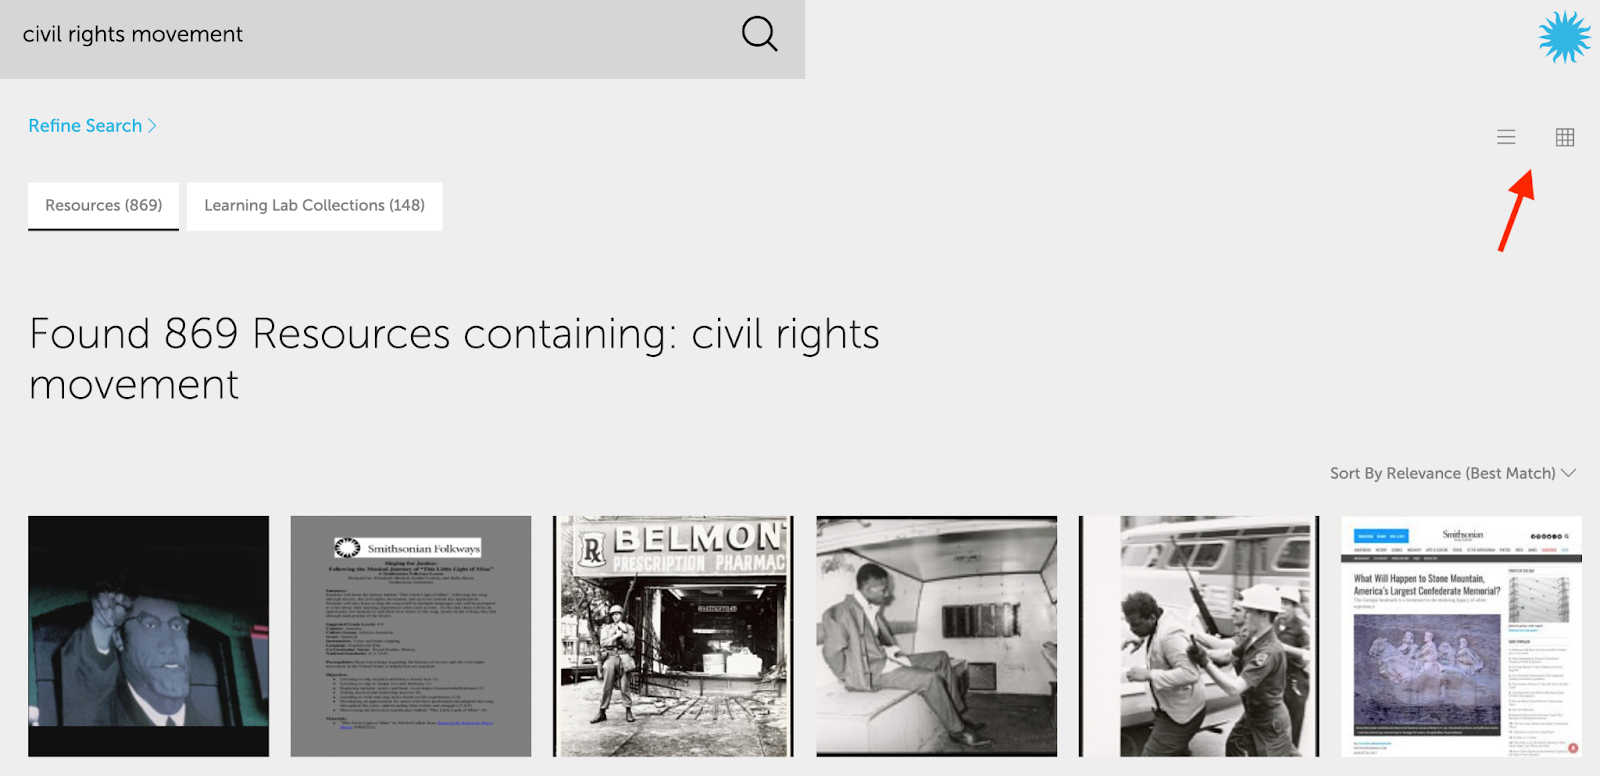 Image of search results for the civil rights movement.